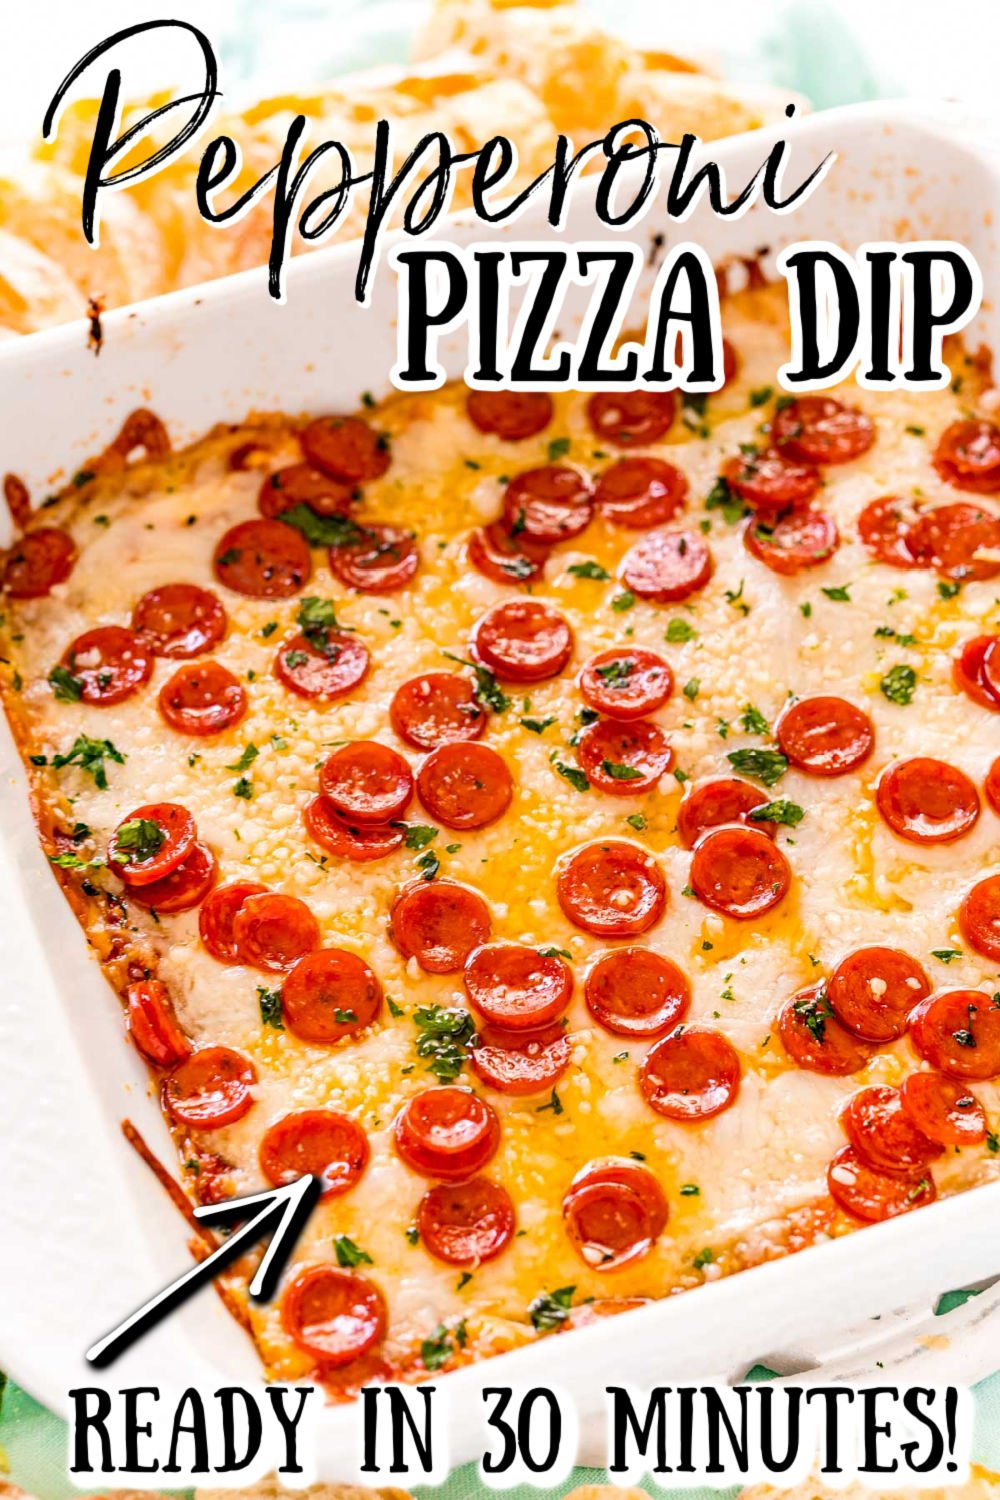 Pizza Dip is a warm cheesy appetizer perfect for game day parties, potlucks, or holidays! Pair this dip with your favorite tortilla chips, crackers, bread, or even vegetables and watch it quickly disappear as it becomes the crowd favorite!  via @sugarandsoulco